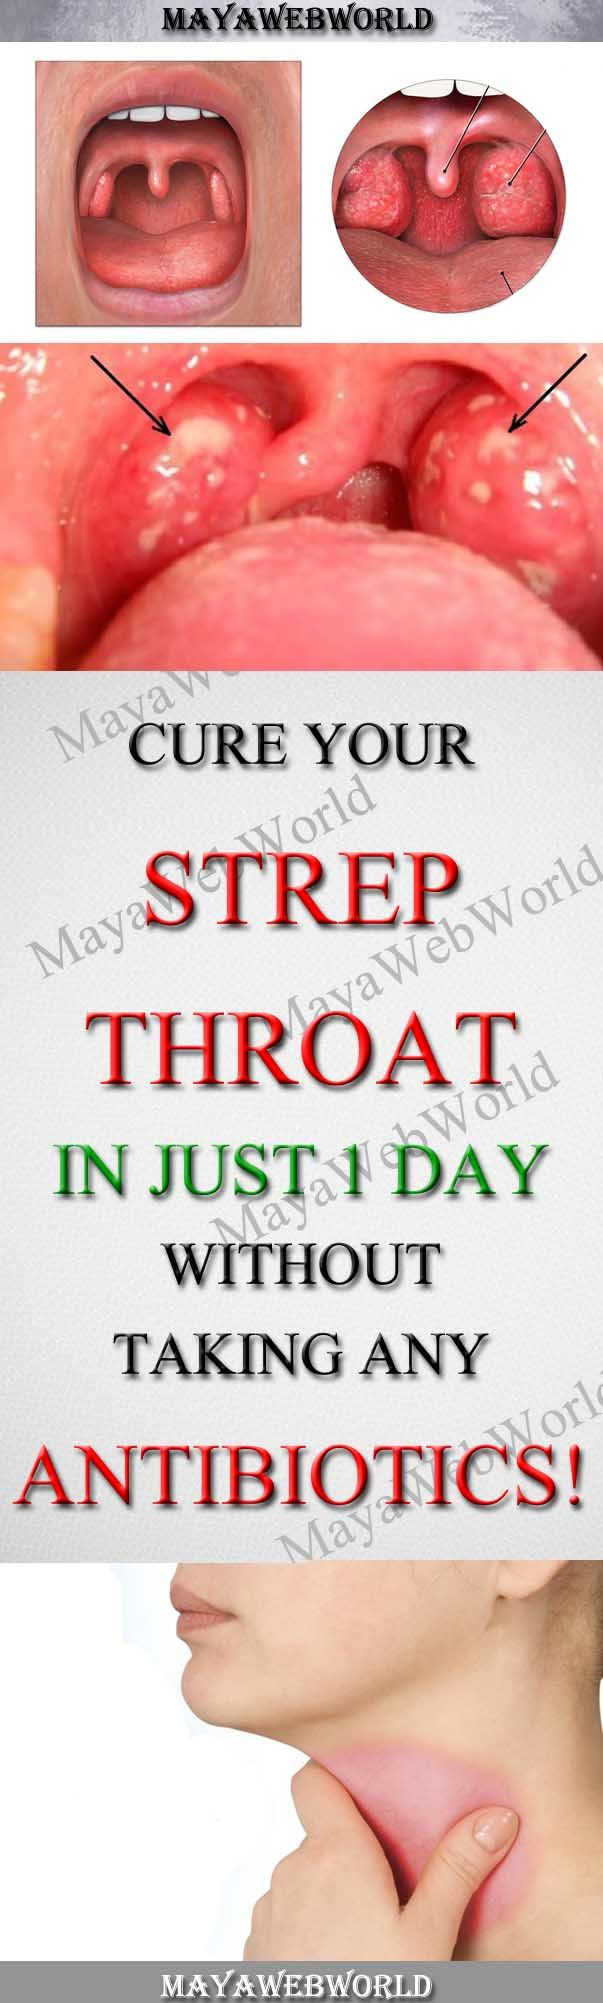 Cure Your Strep Throat In Just One Day Without Taking Any Antibiotics! – MayaWebWorld